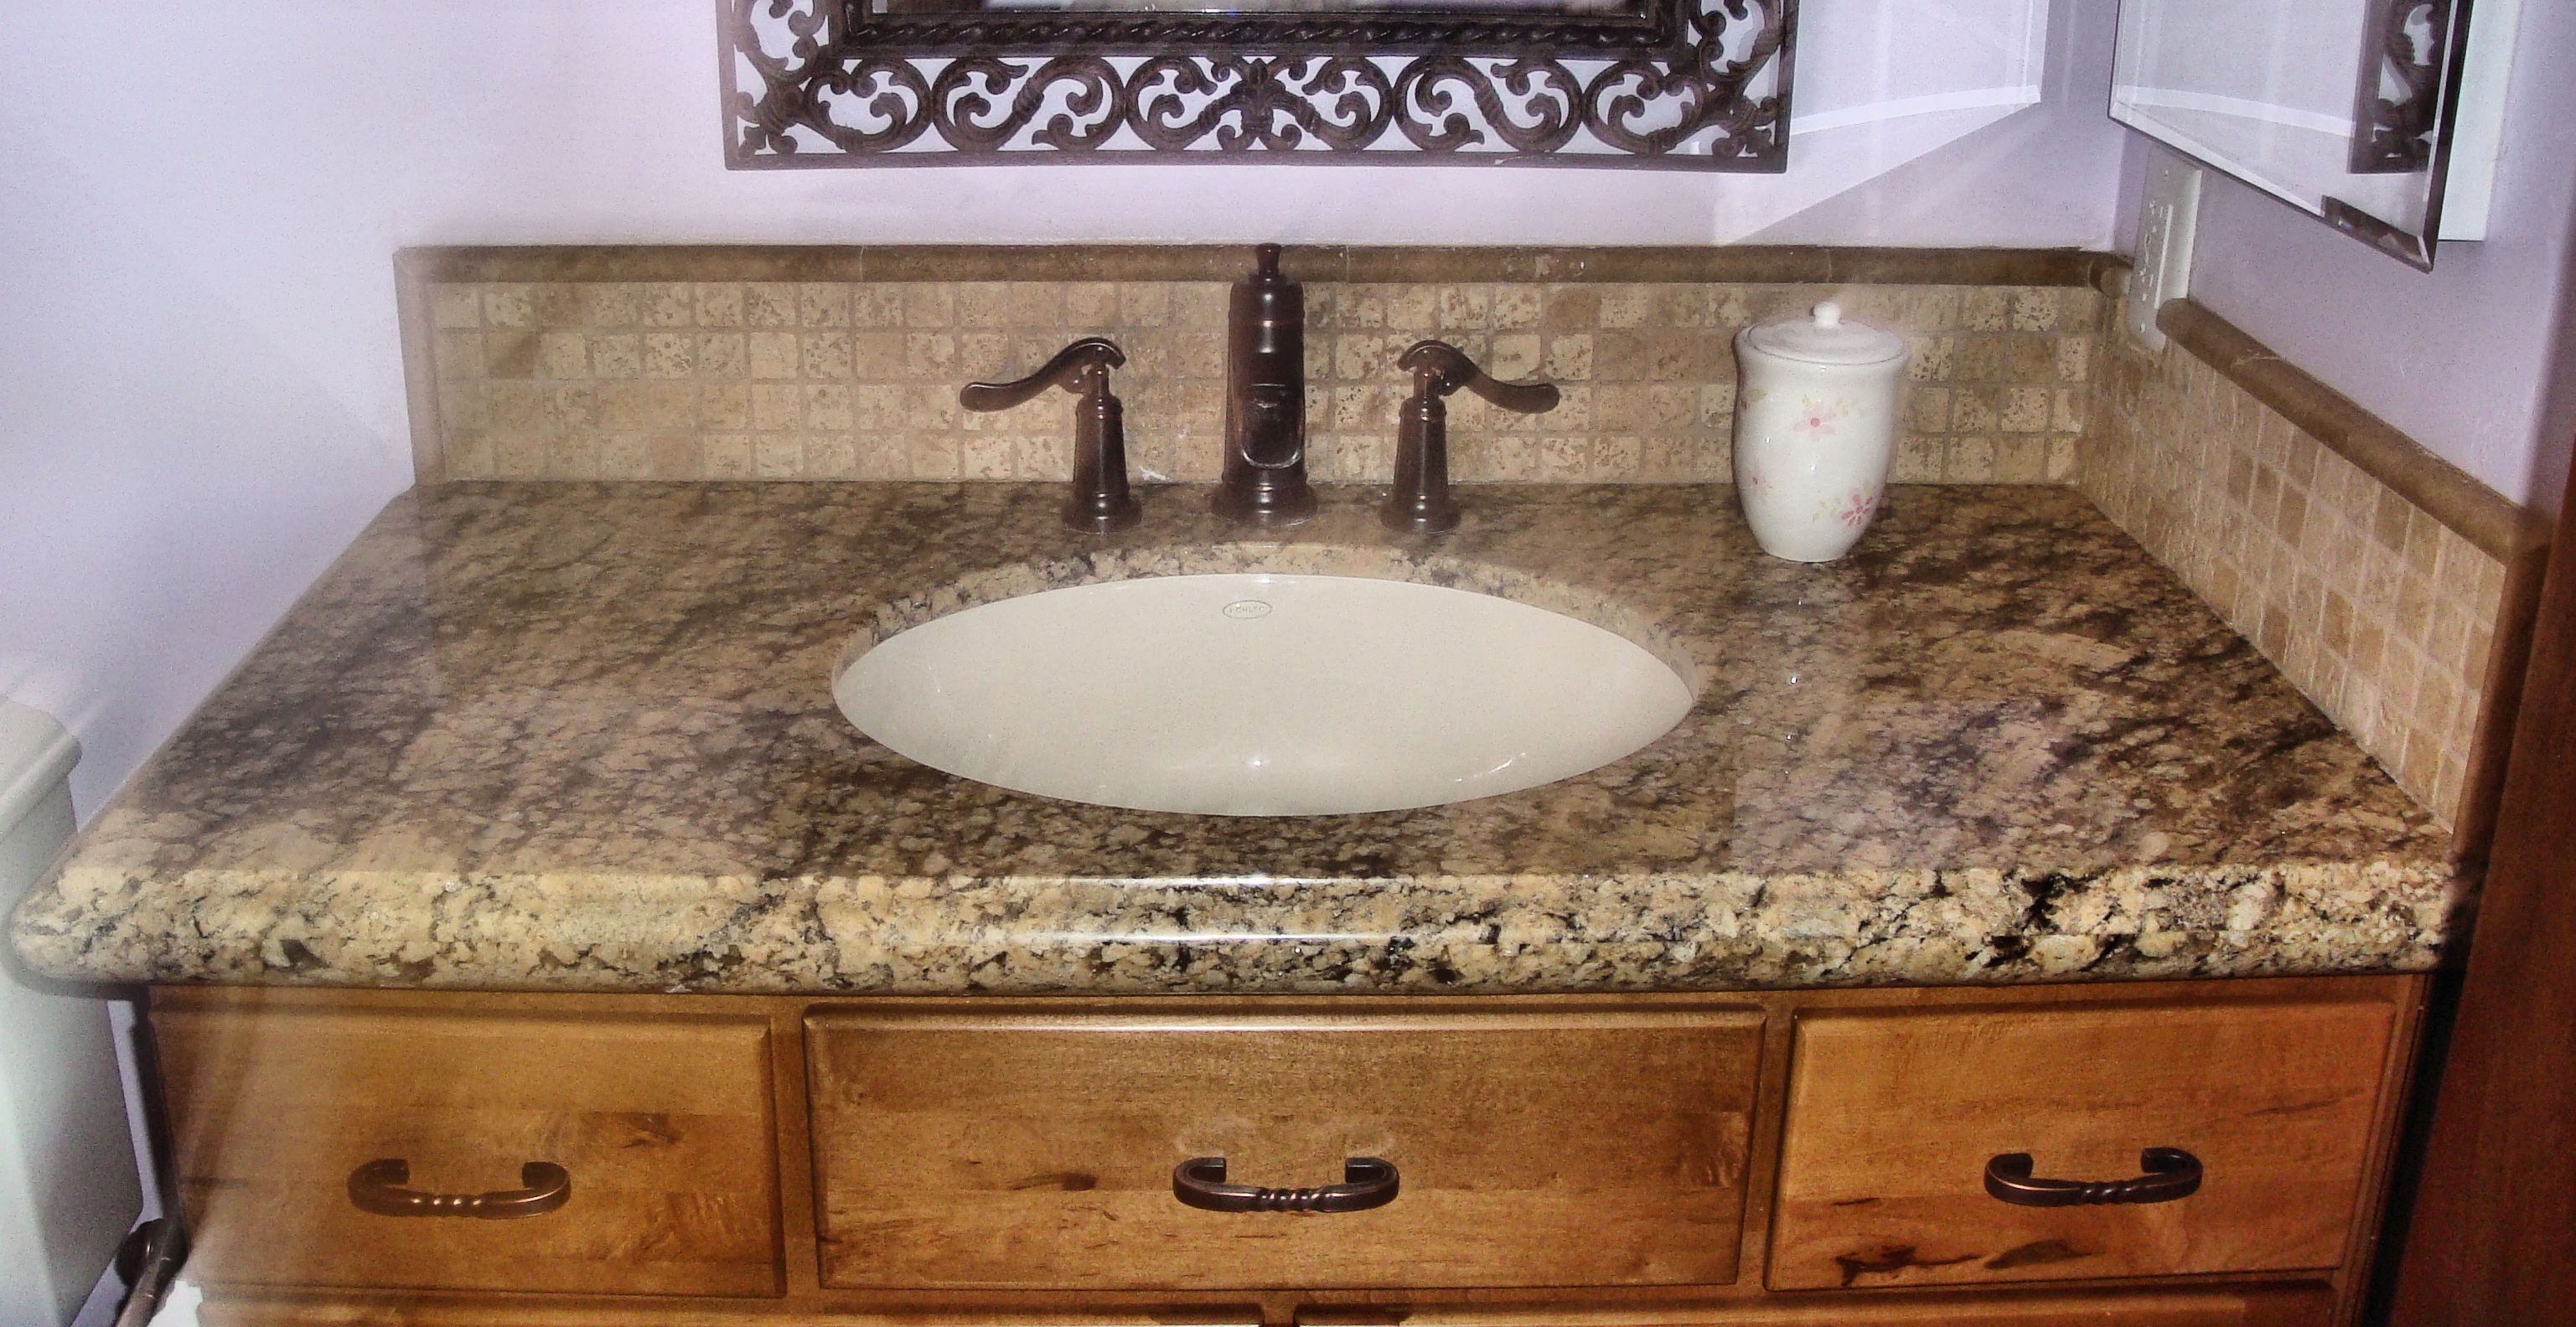 Granite Bathroom Countertops Beige Granite Bathroom Countertop